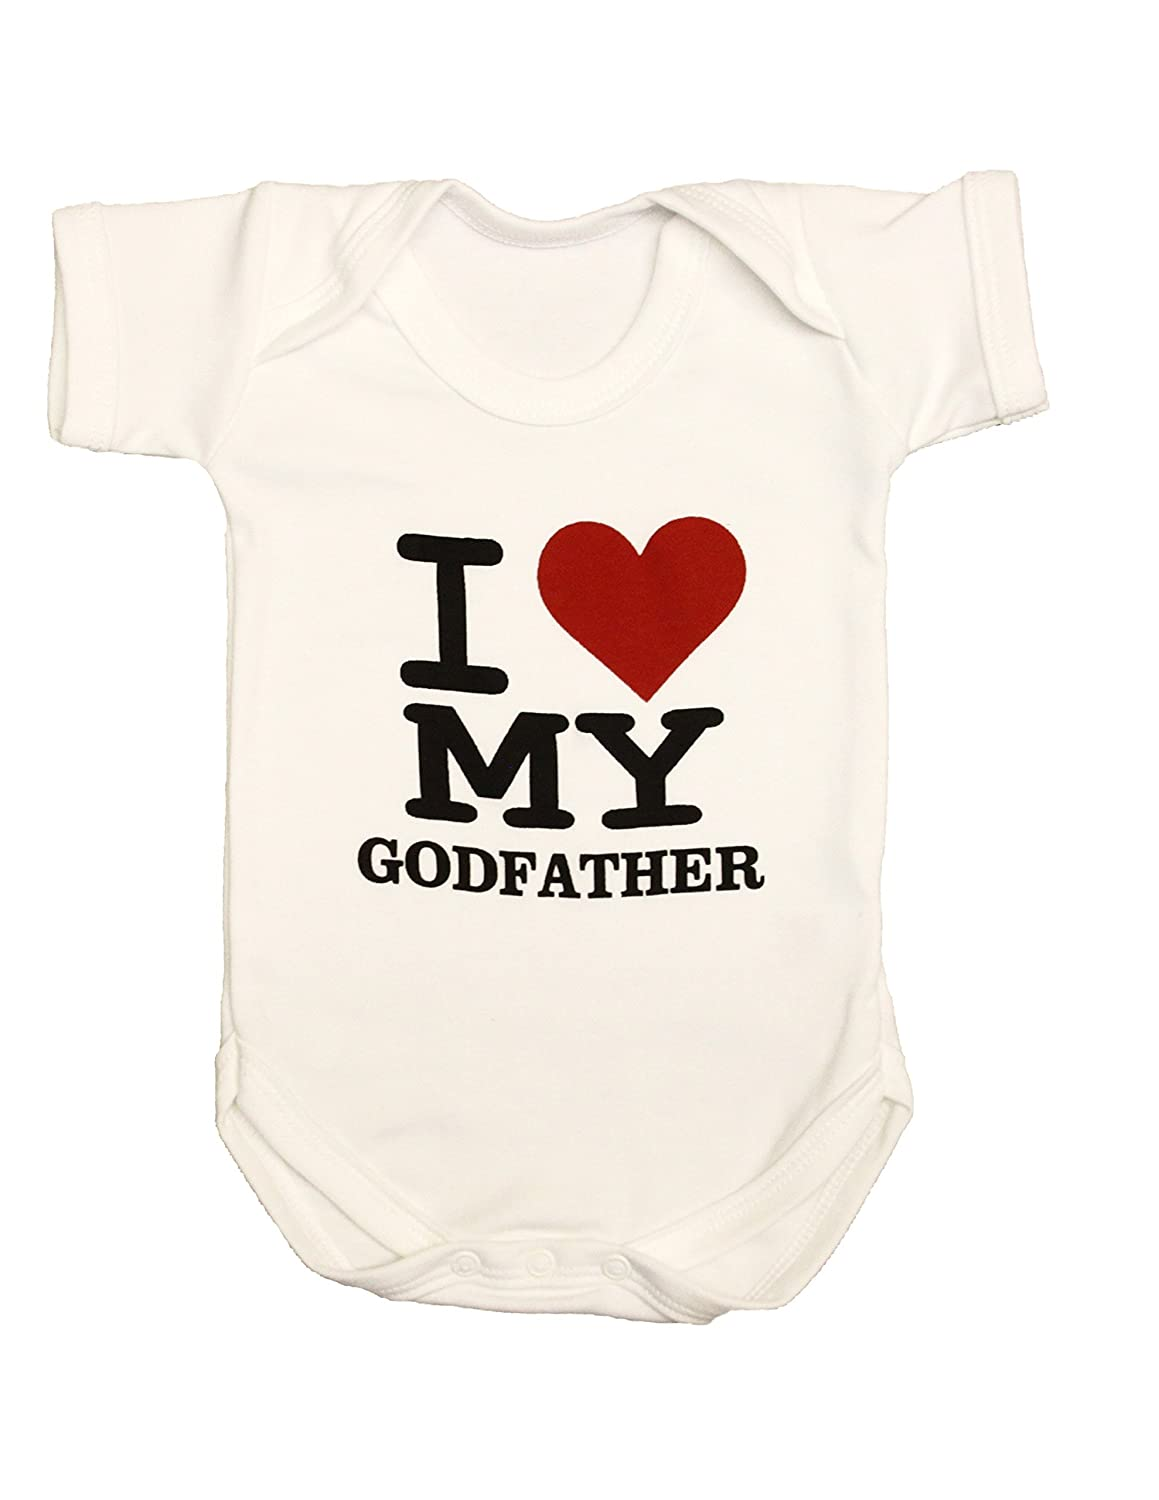 Zaza London Baby-Boys I Love My Godfather Suit Vest Newborn Gift Baby Grow